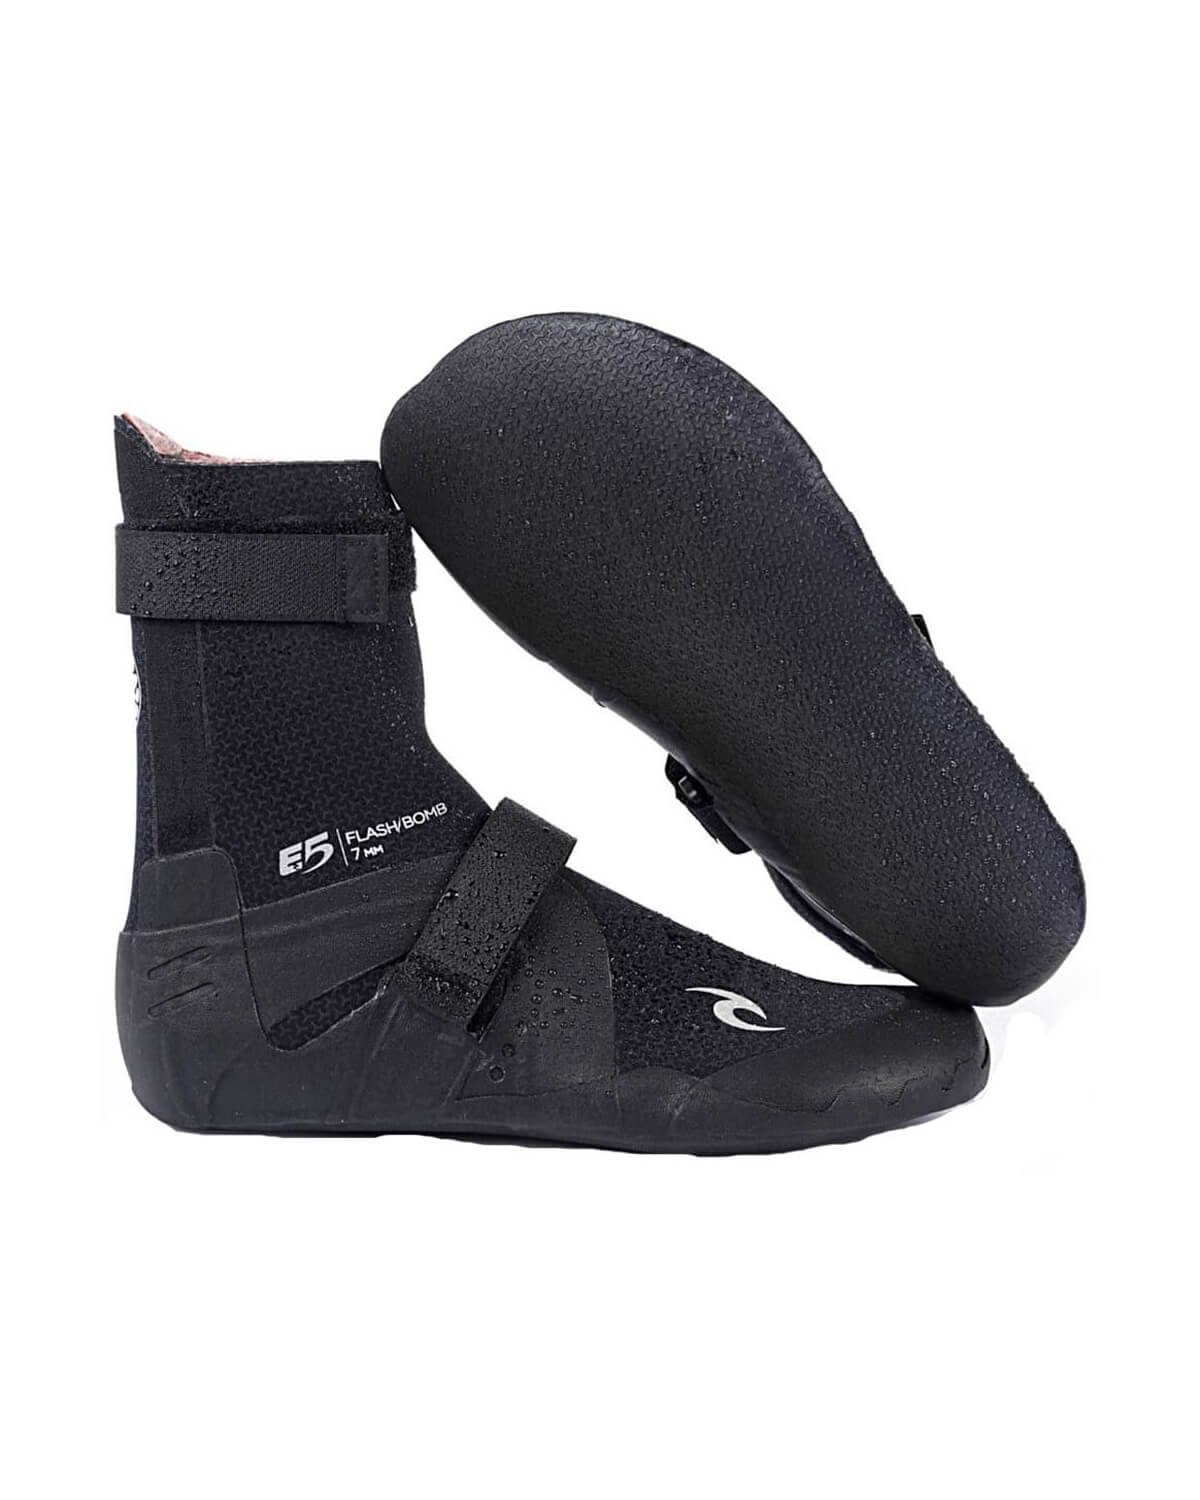 7mm Rip Curl FLASH BOMB Round Toe Boots